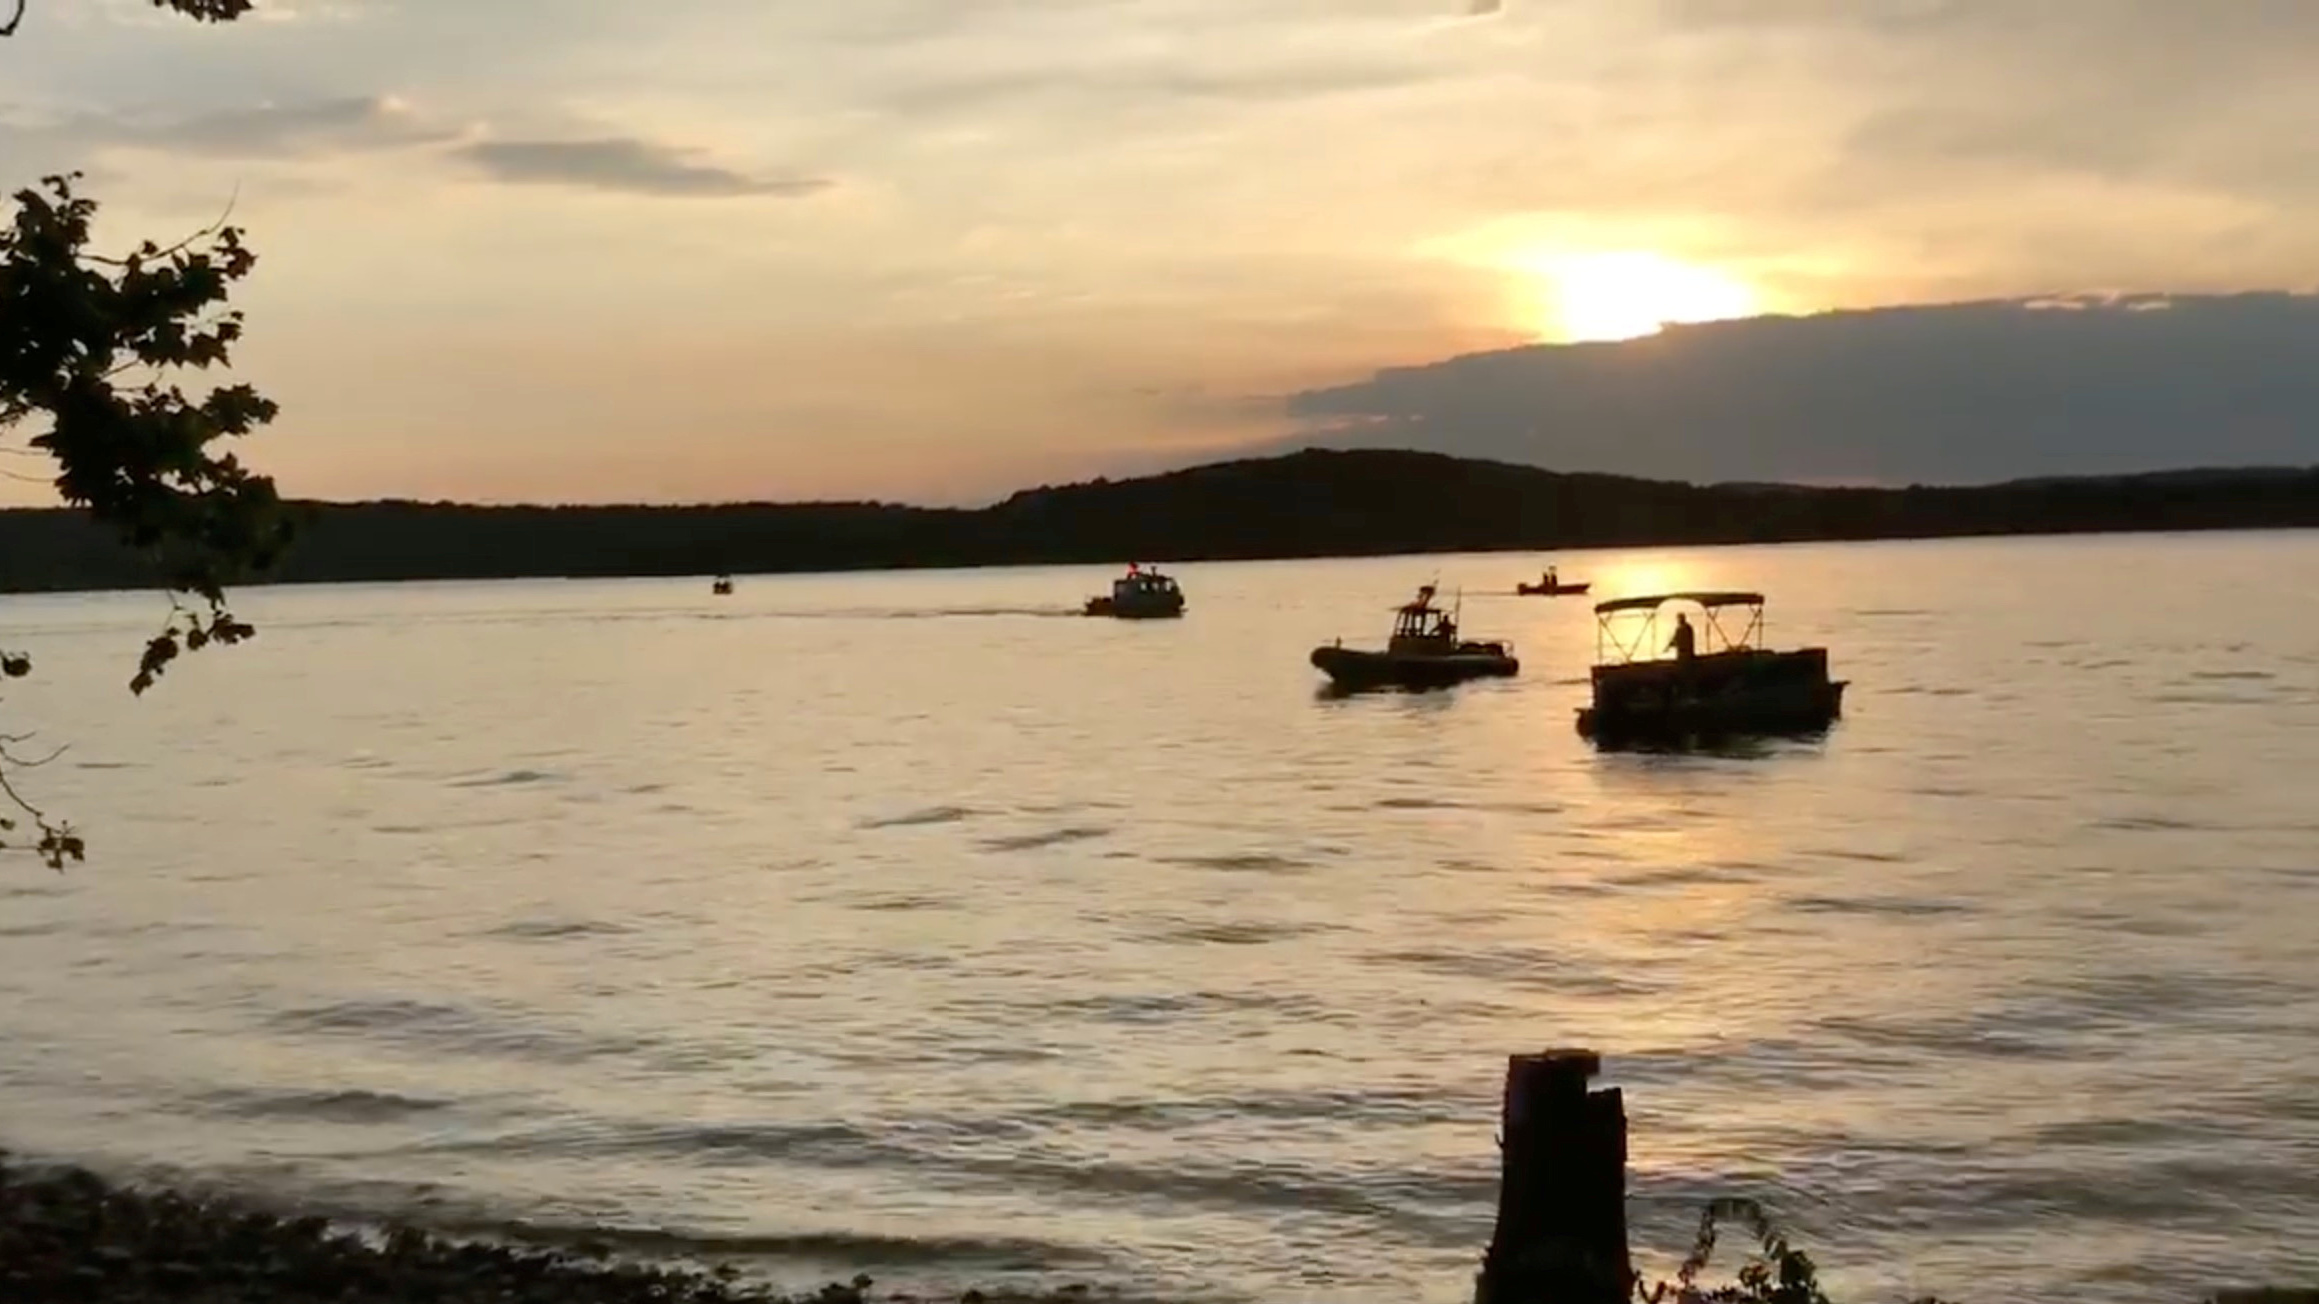 8 fatalities, several hospitalizations confirmed in Missouri duck boat capsizing